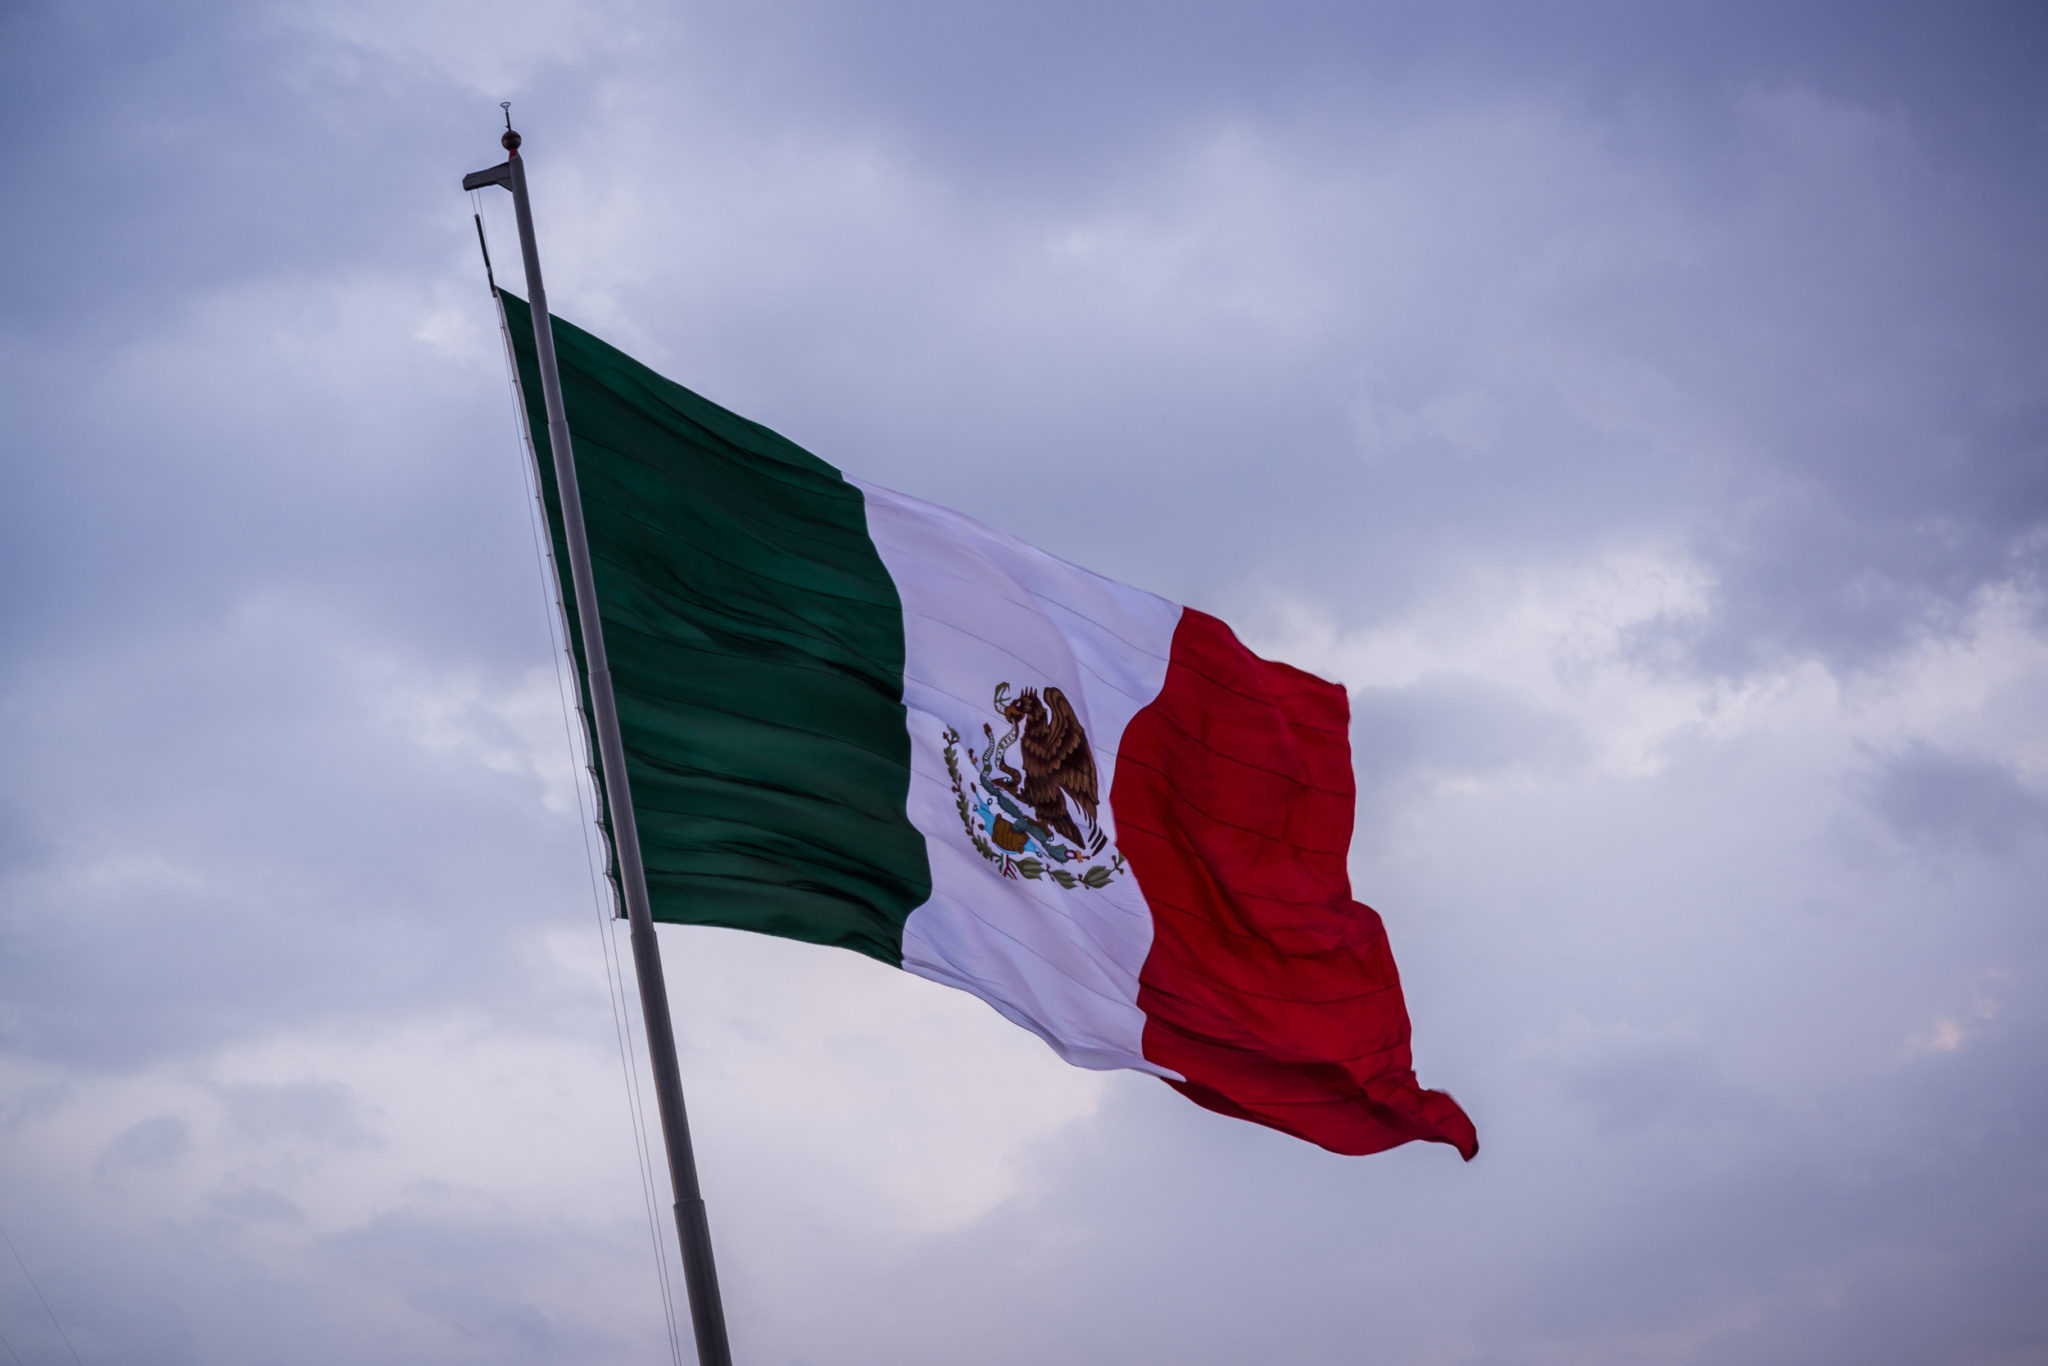 Mexico is sending its new national guard to the Guatemala border. The mission is unclear.